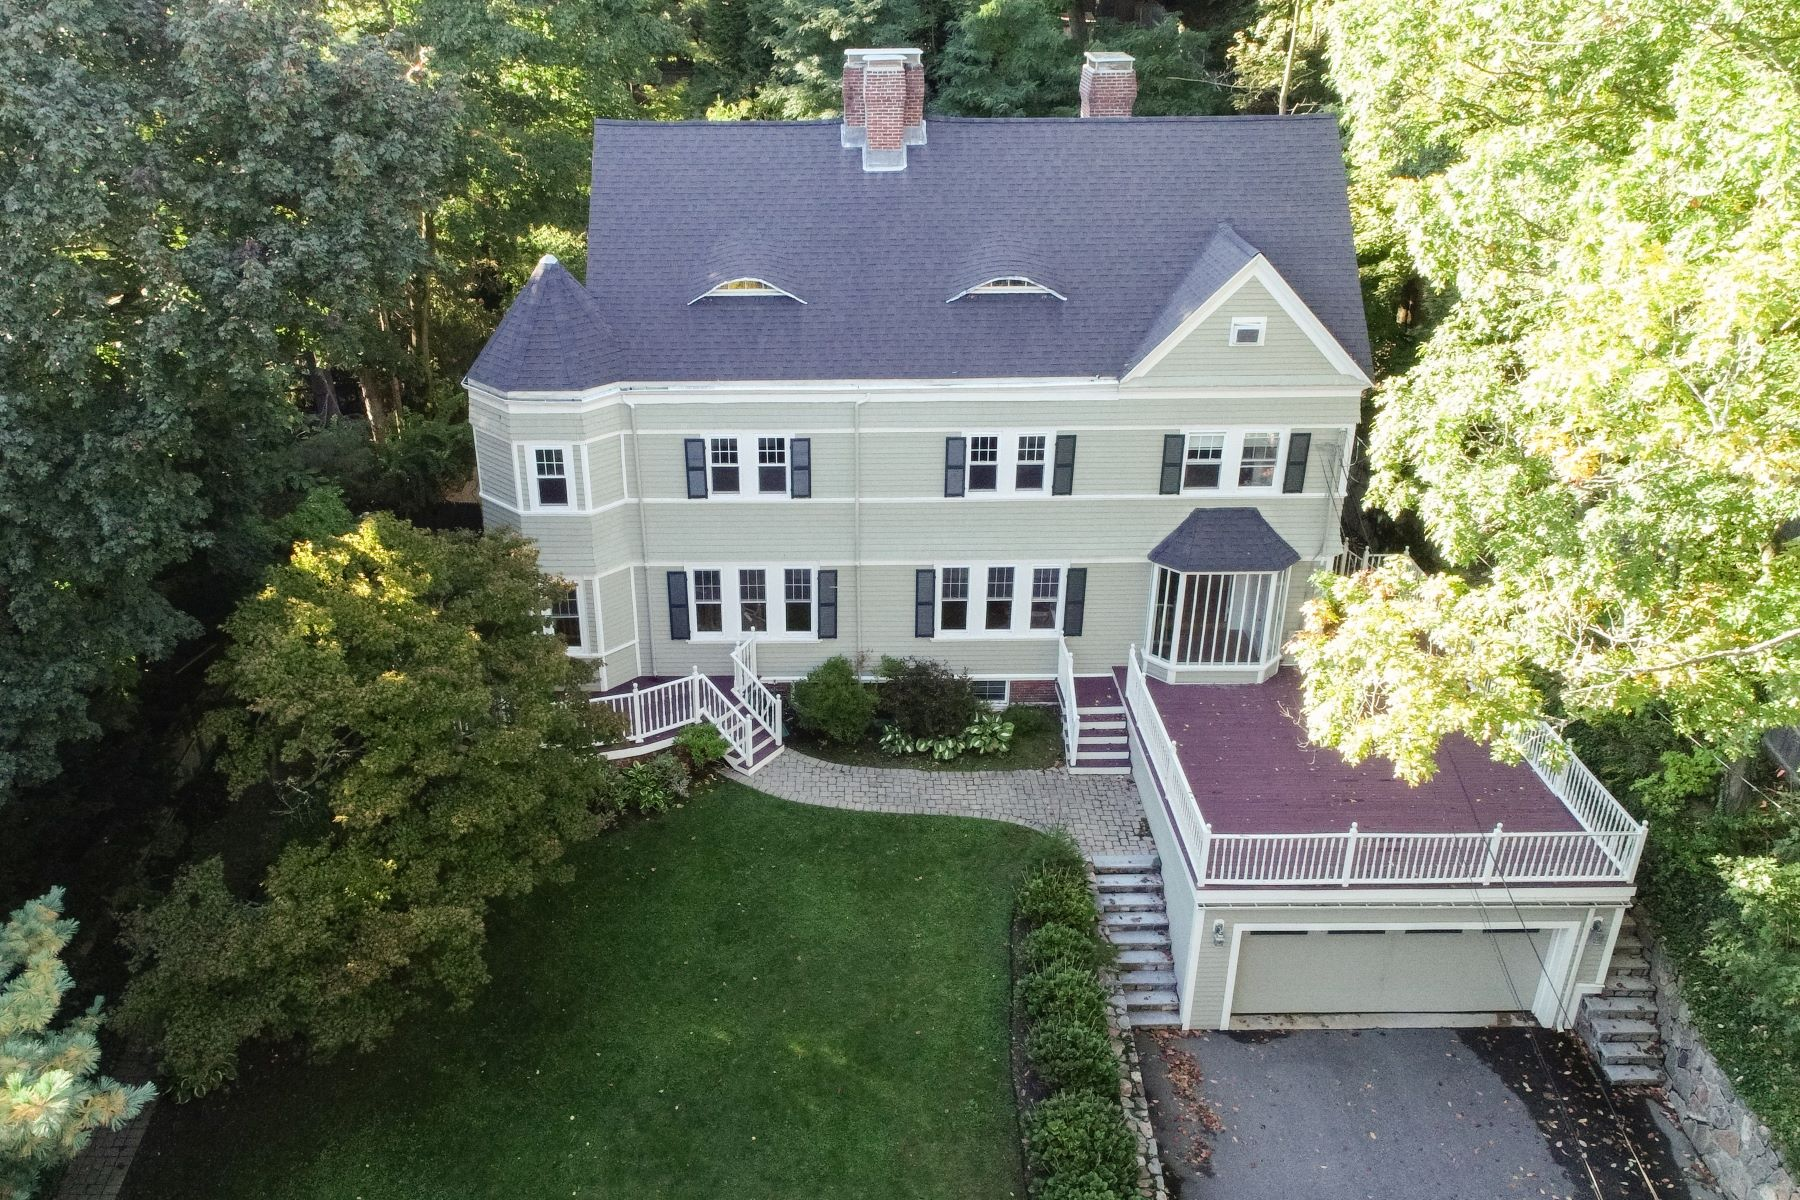 Single Family Home for Active at 213 Gardner Rd Brookline, Massachusetts 02445 United States